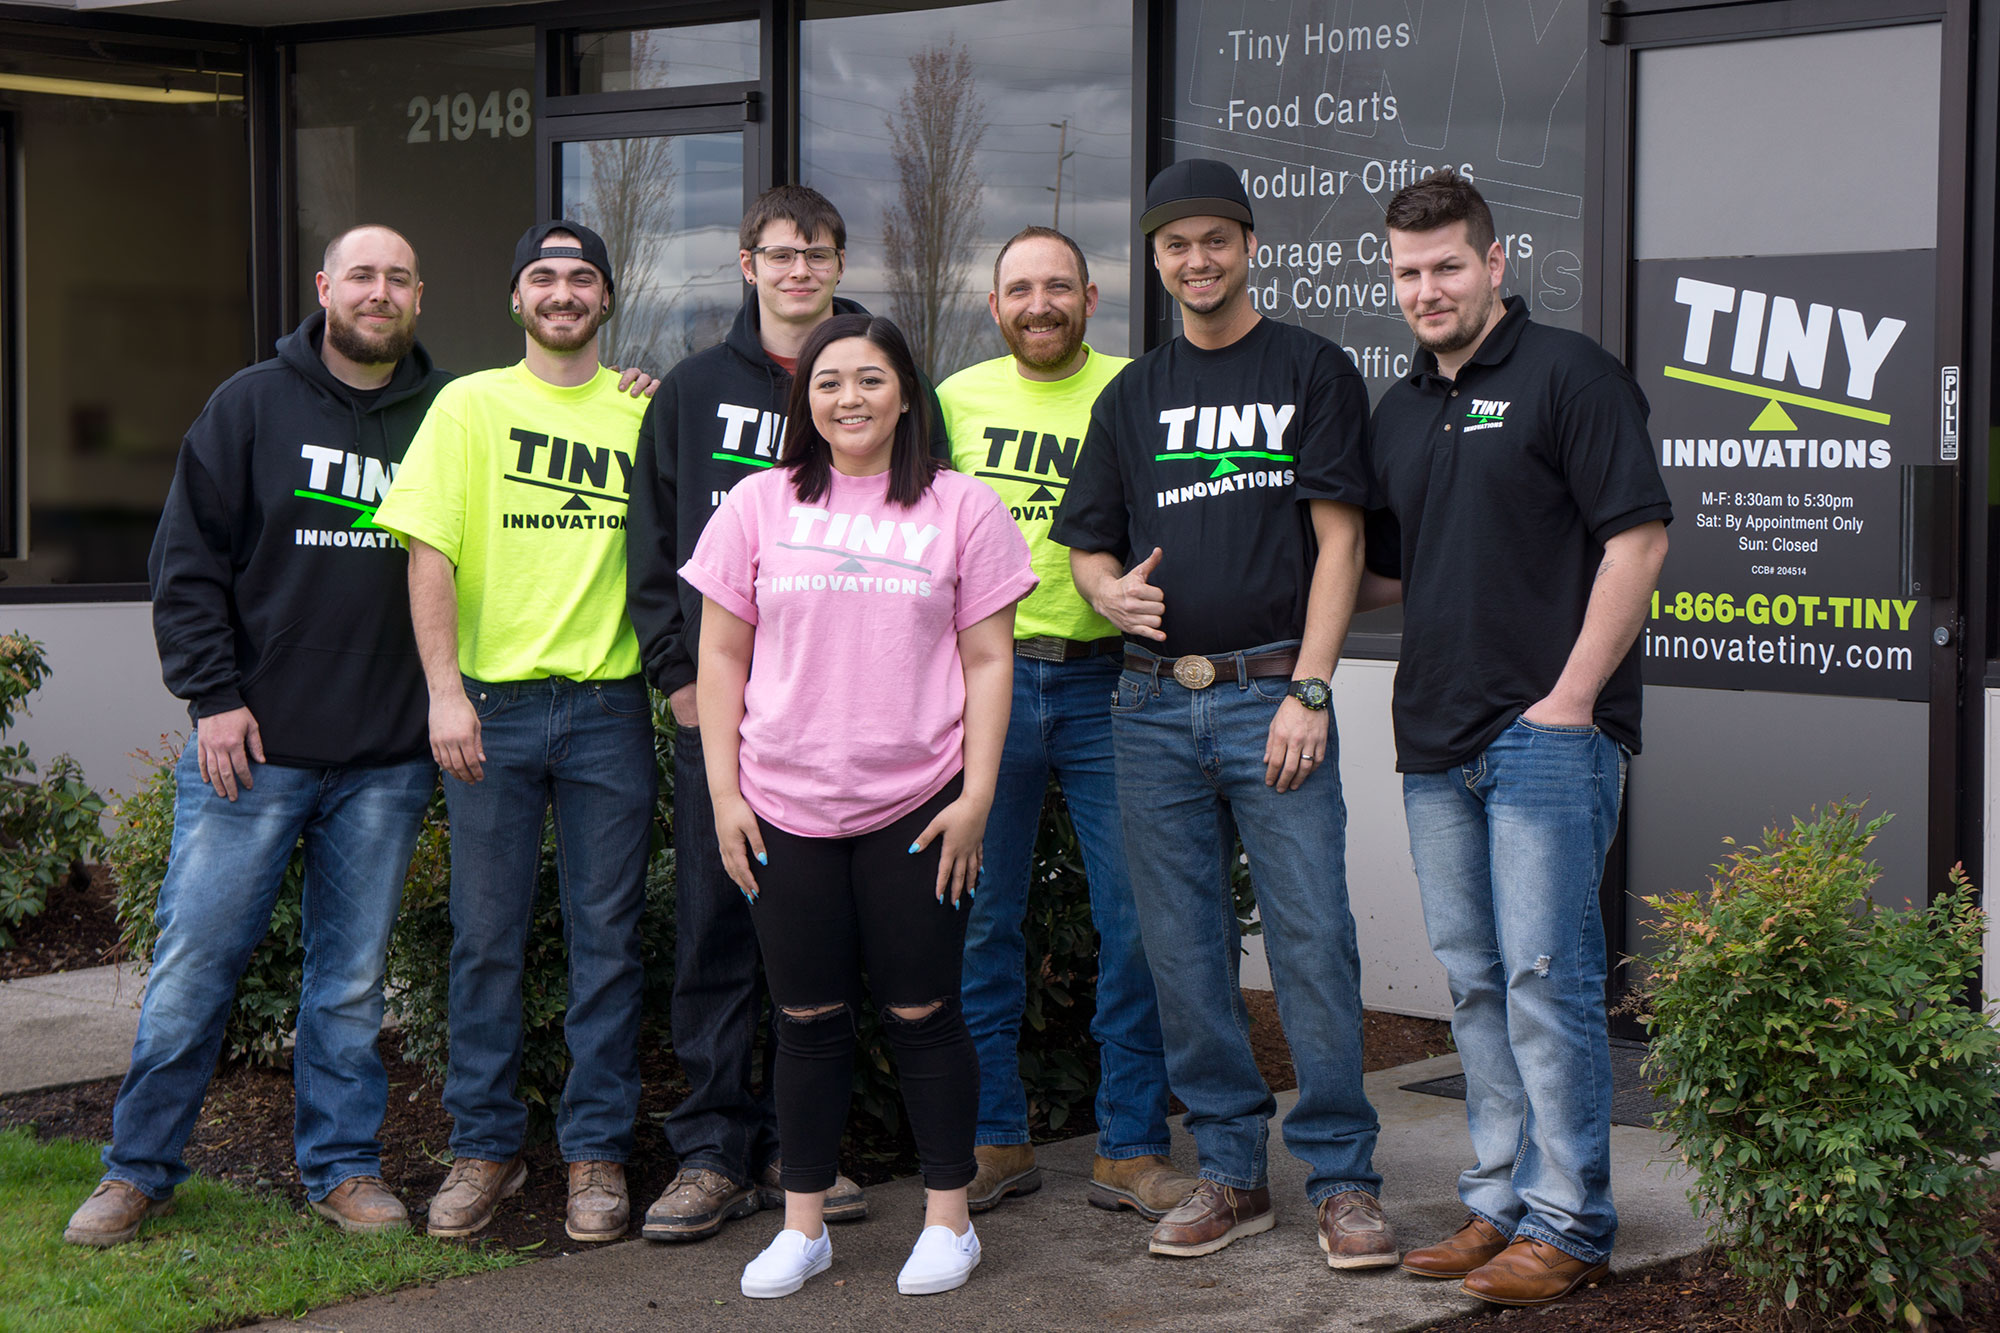 The Tiny Innovations team